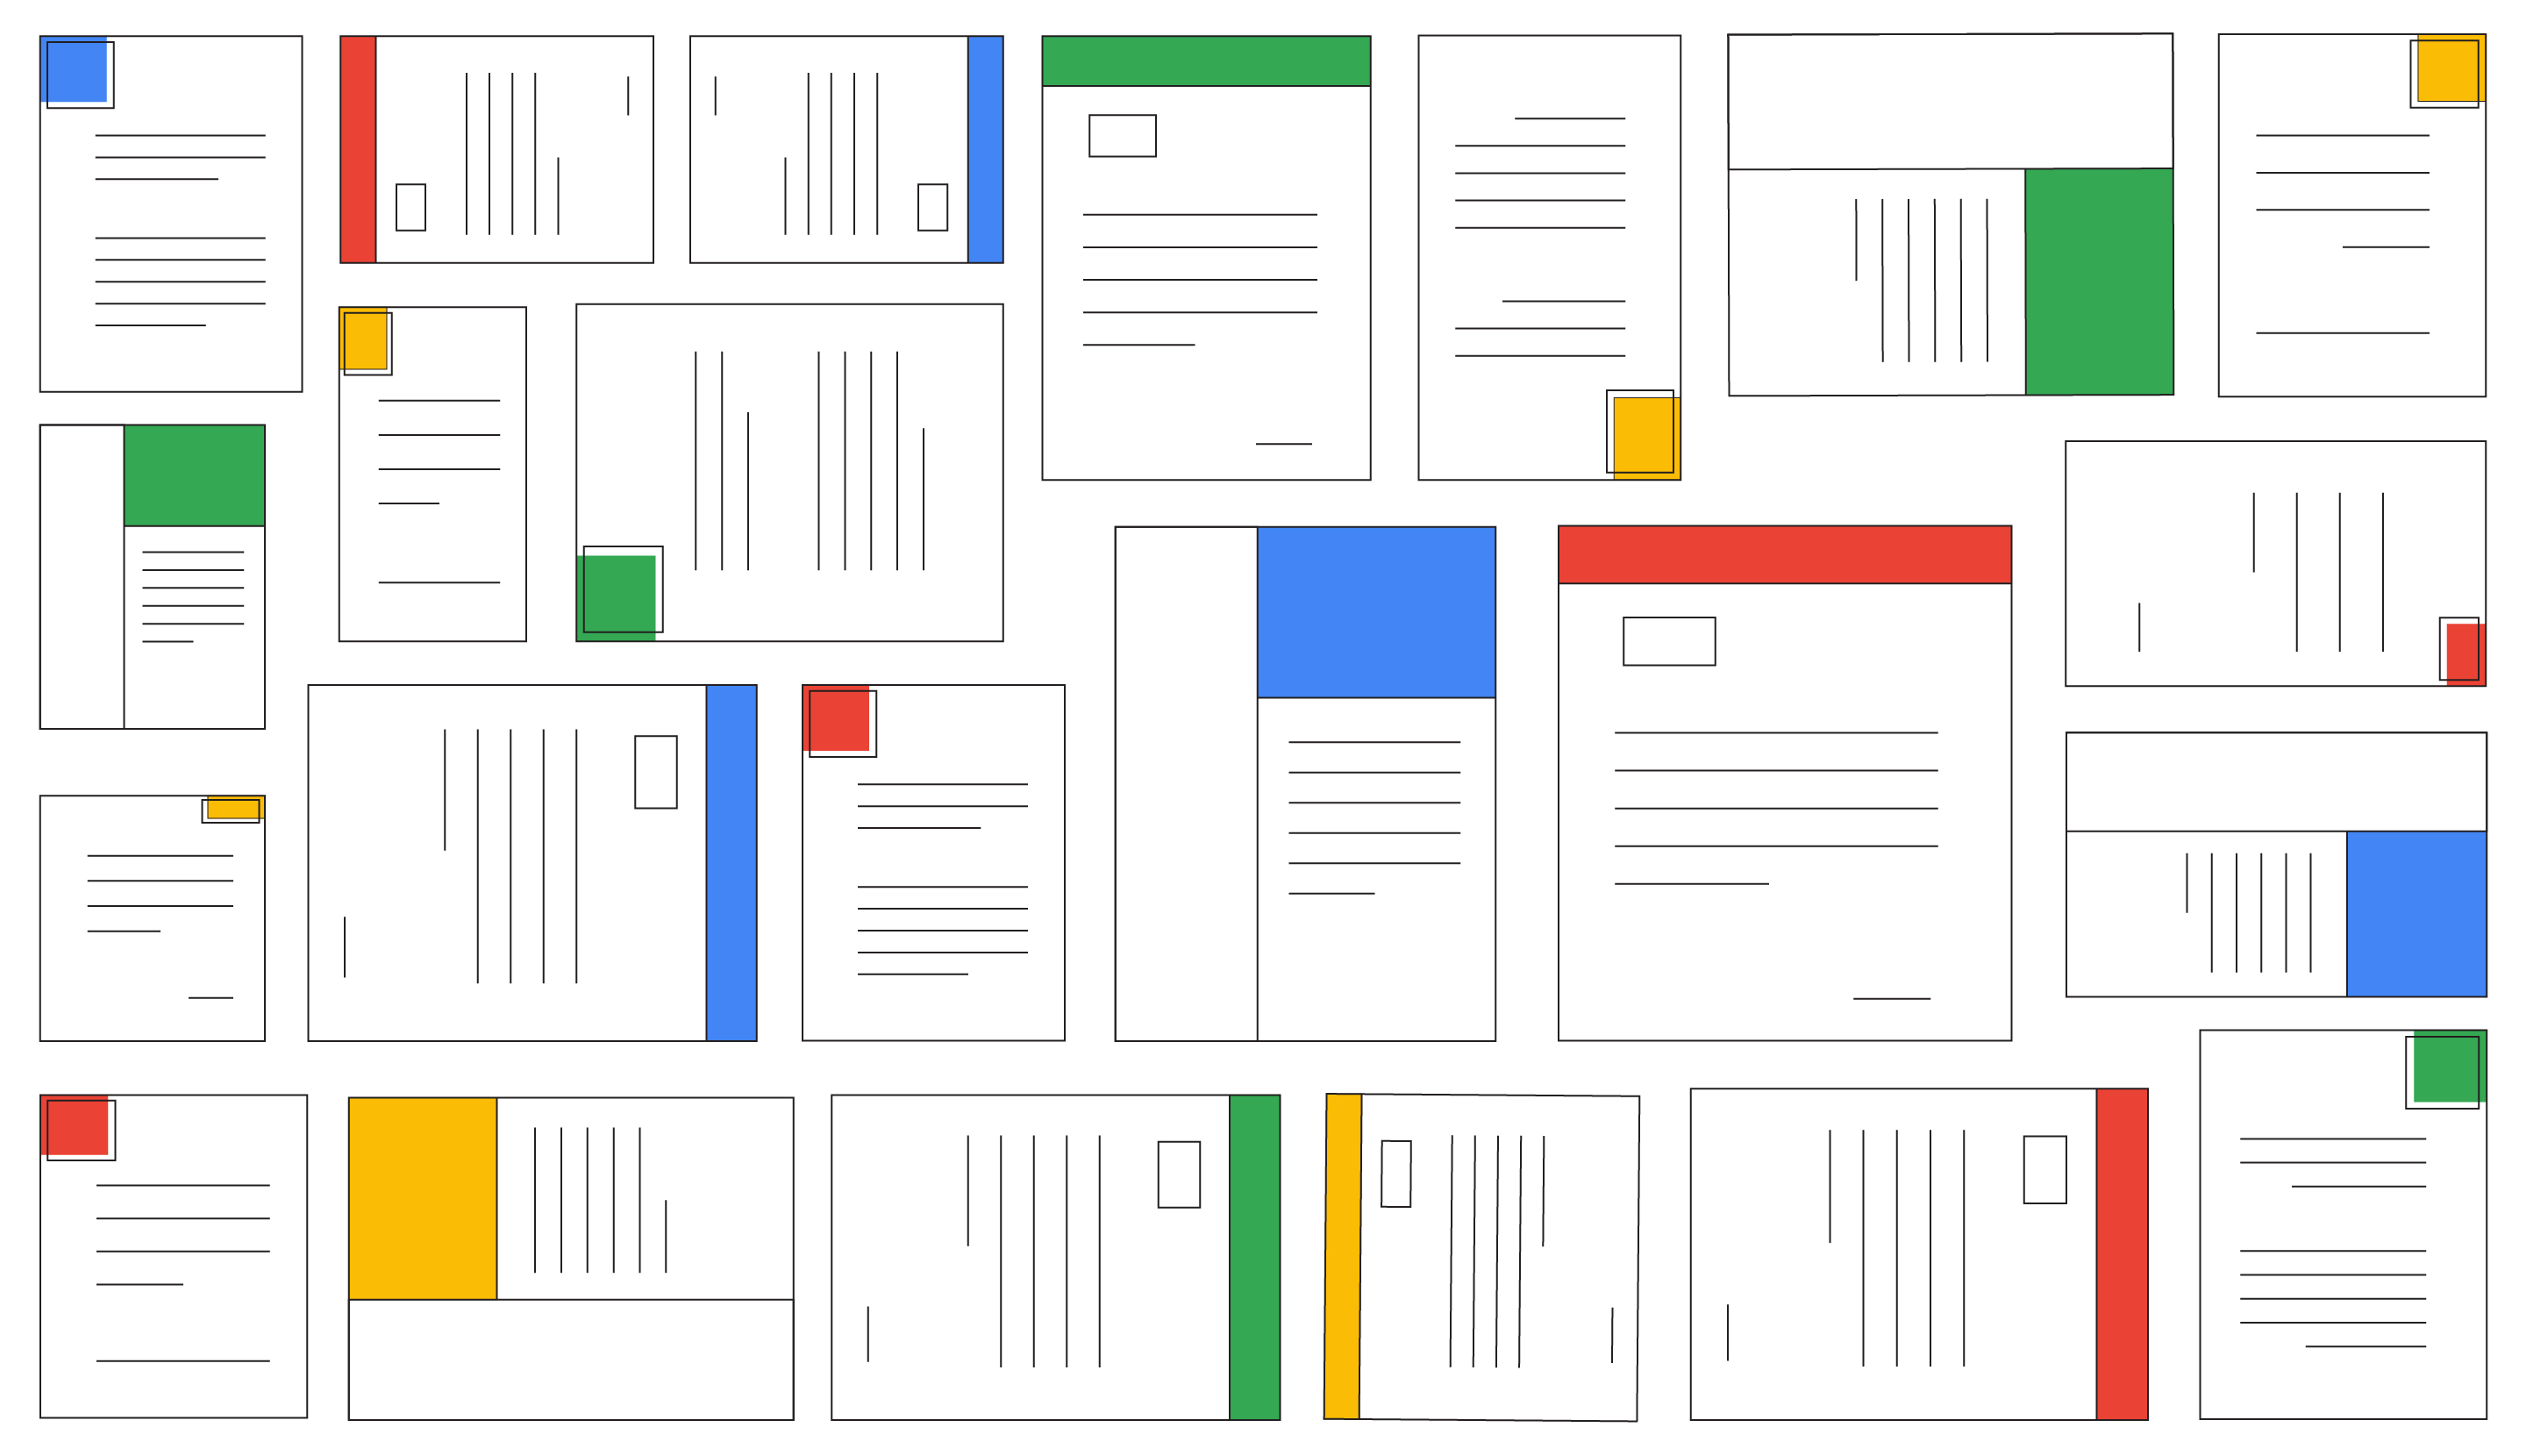 Google introduces Hire, a new recruiting app that integrates